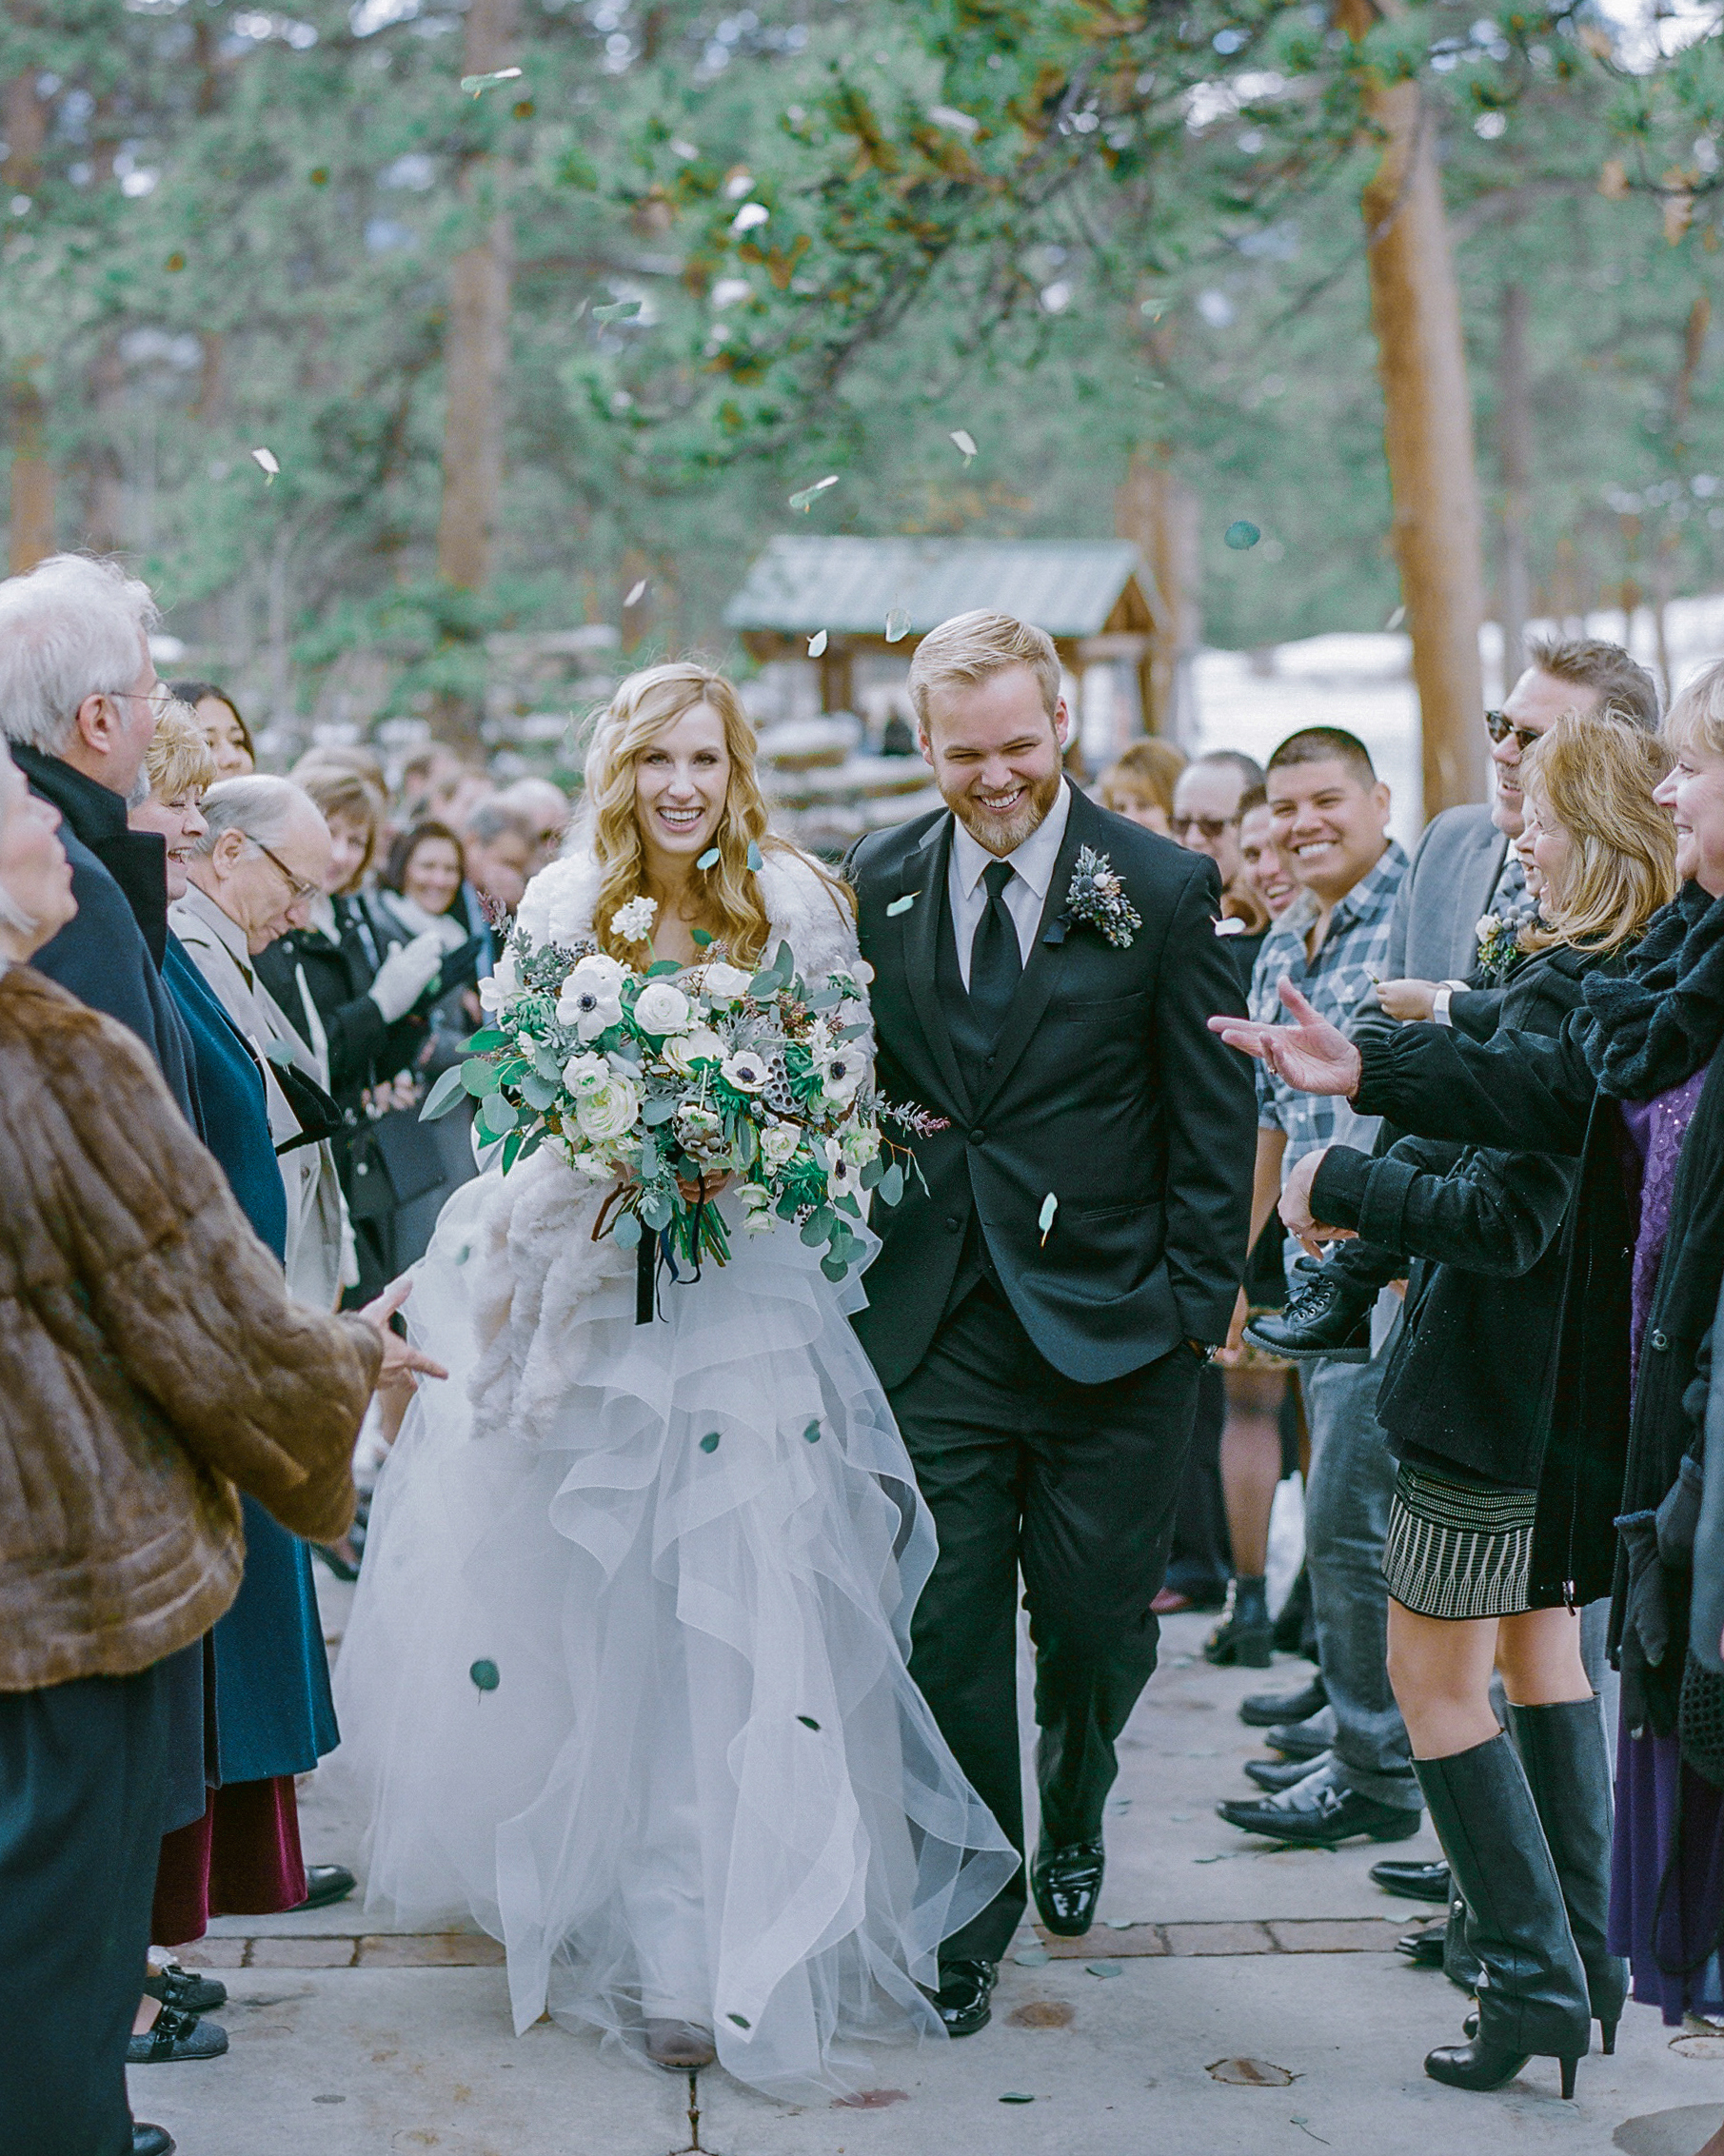 kendall-grant-wedding-recessional-093-s112328-1215.jpg